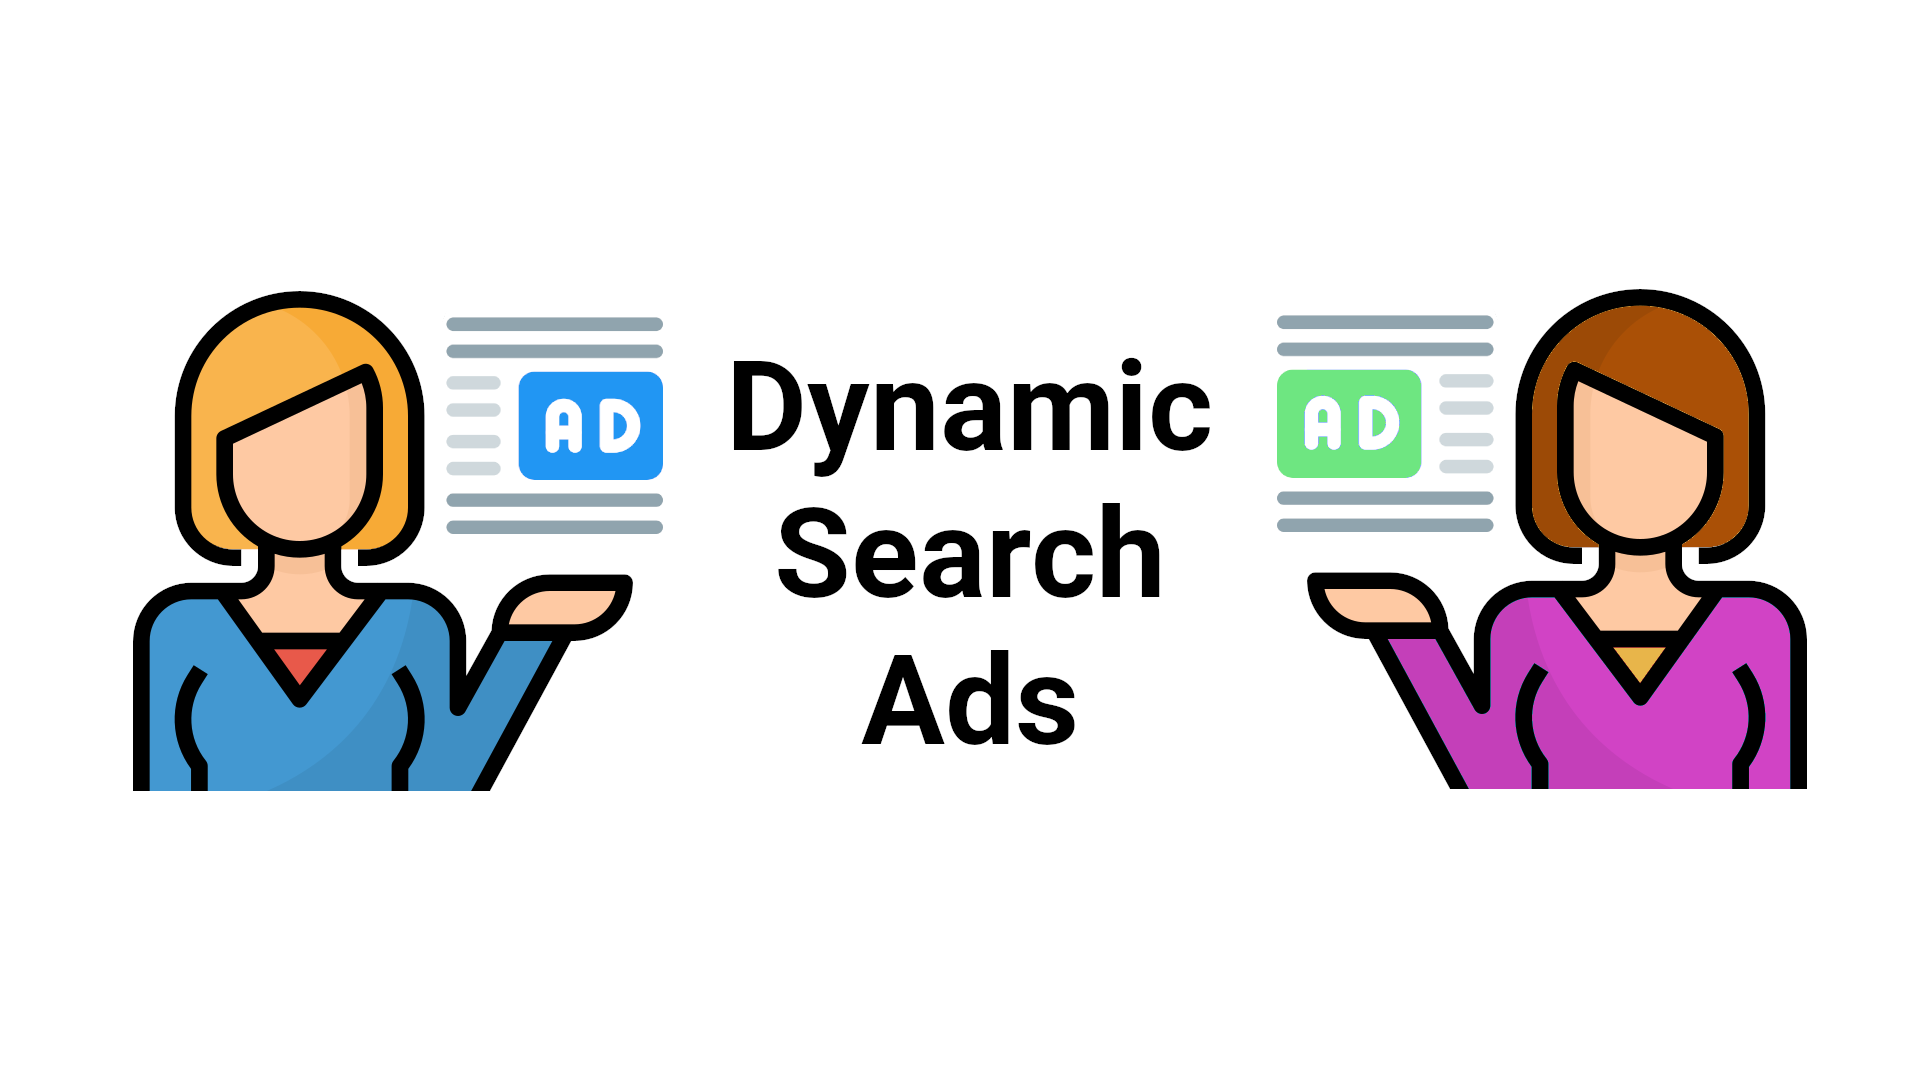 What Are Dynamic Search Ads?